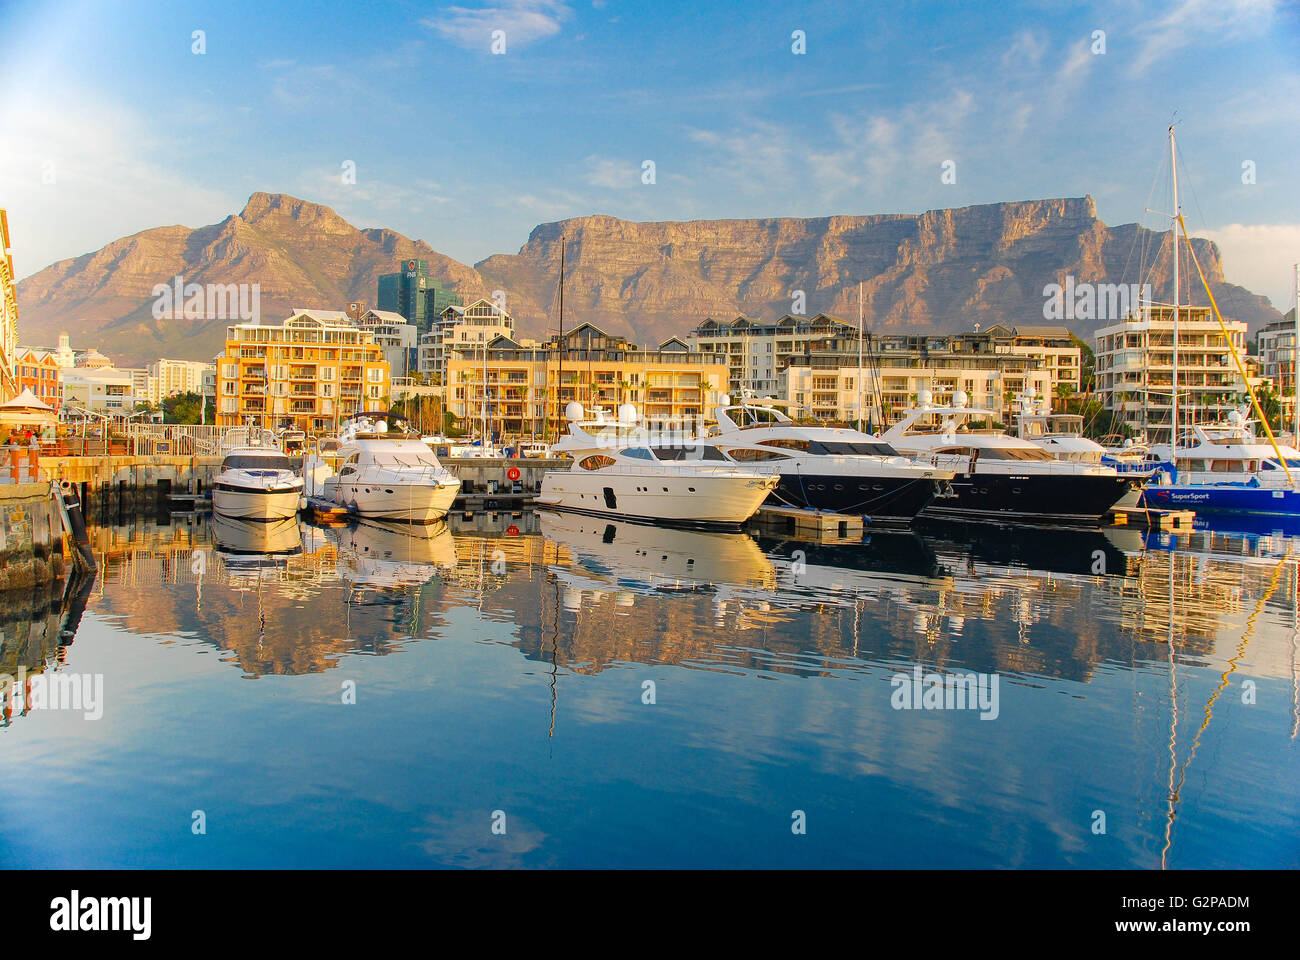 Table Mountain, Cape Town, South Africa - Stock Image